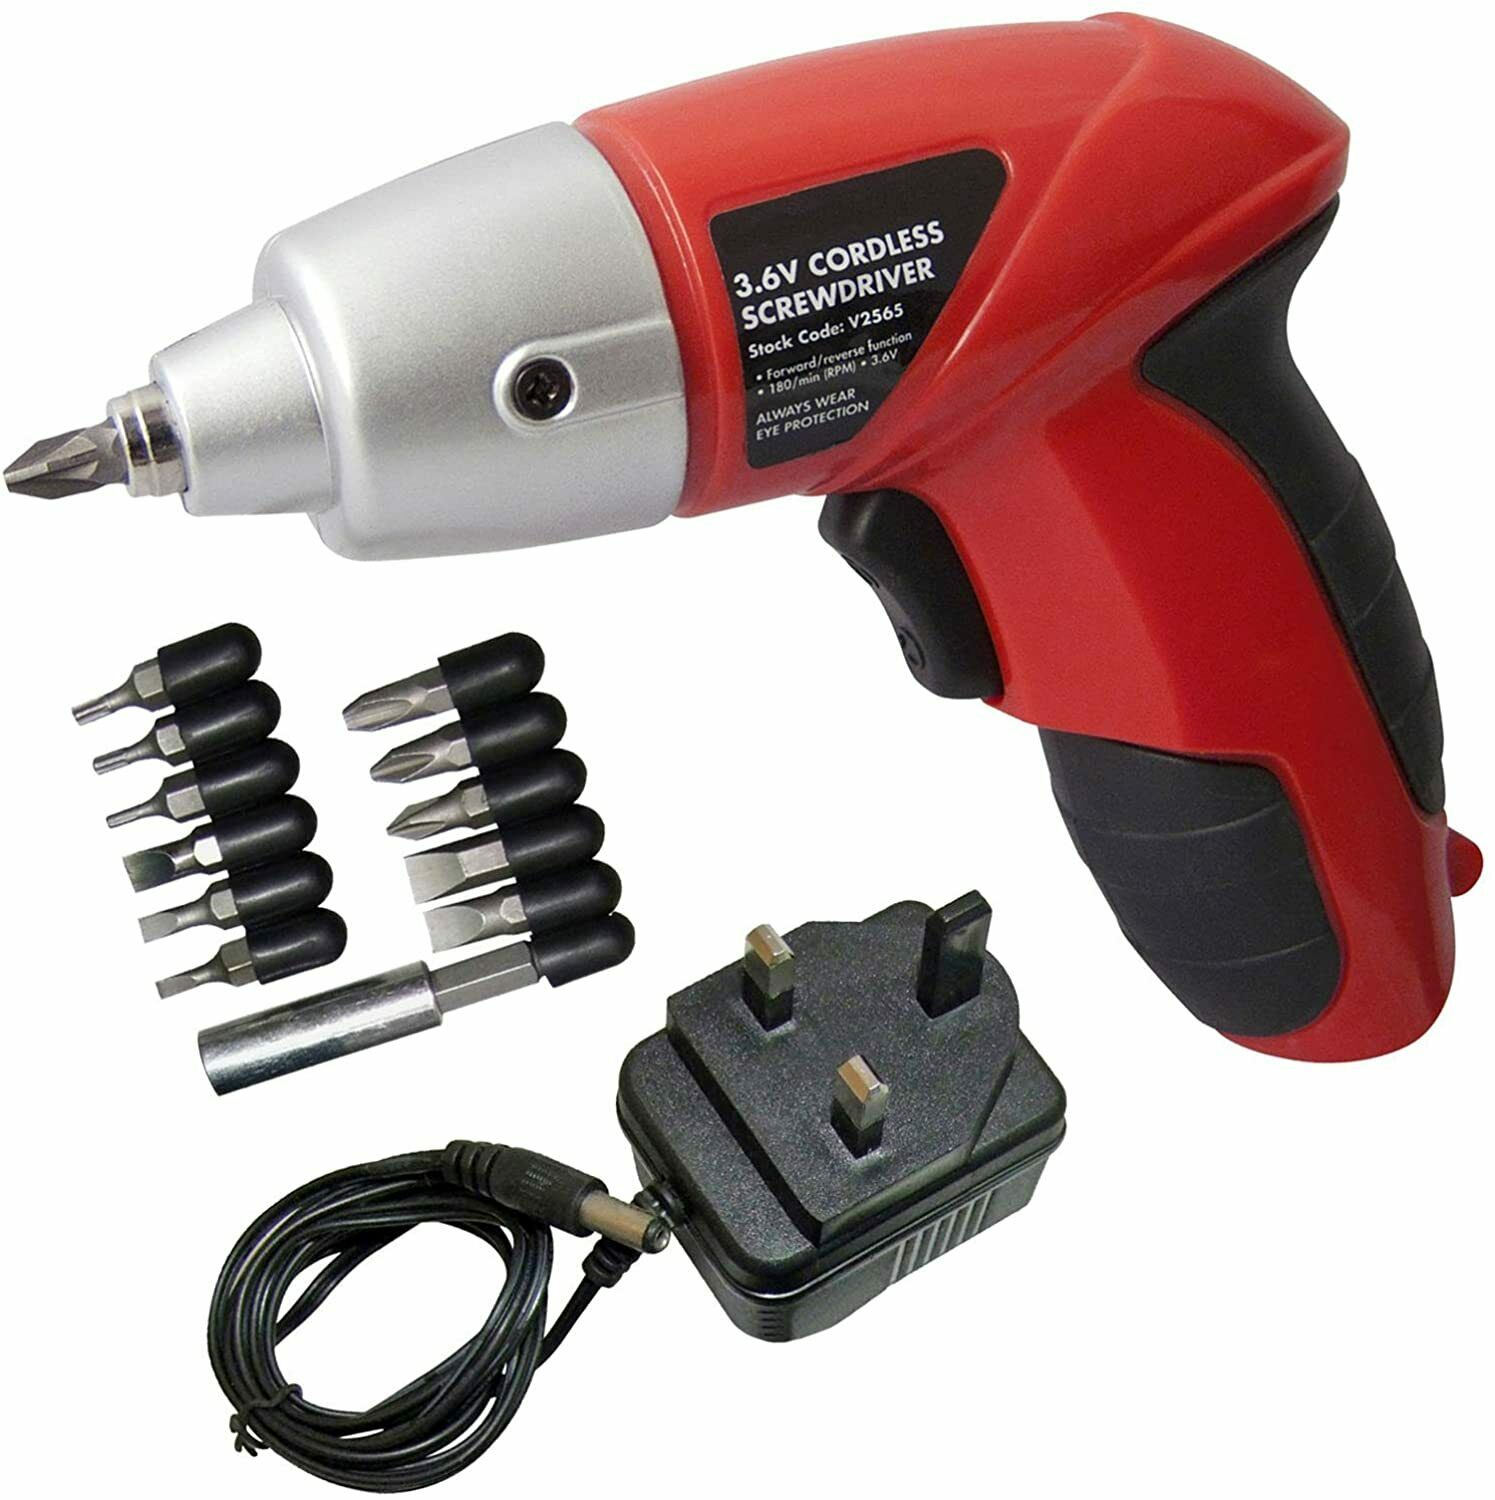 Rechargeable Cordless Electric Screwdriver Power Tool